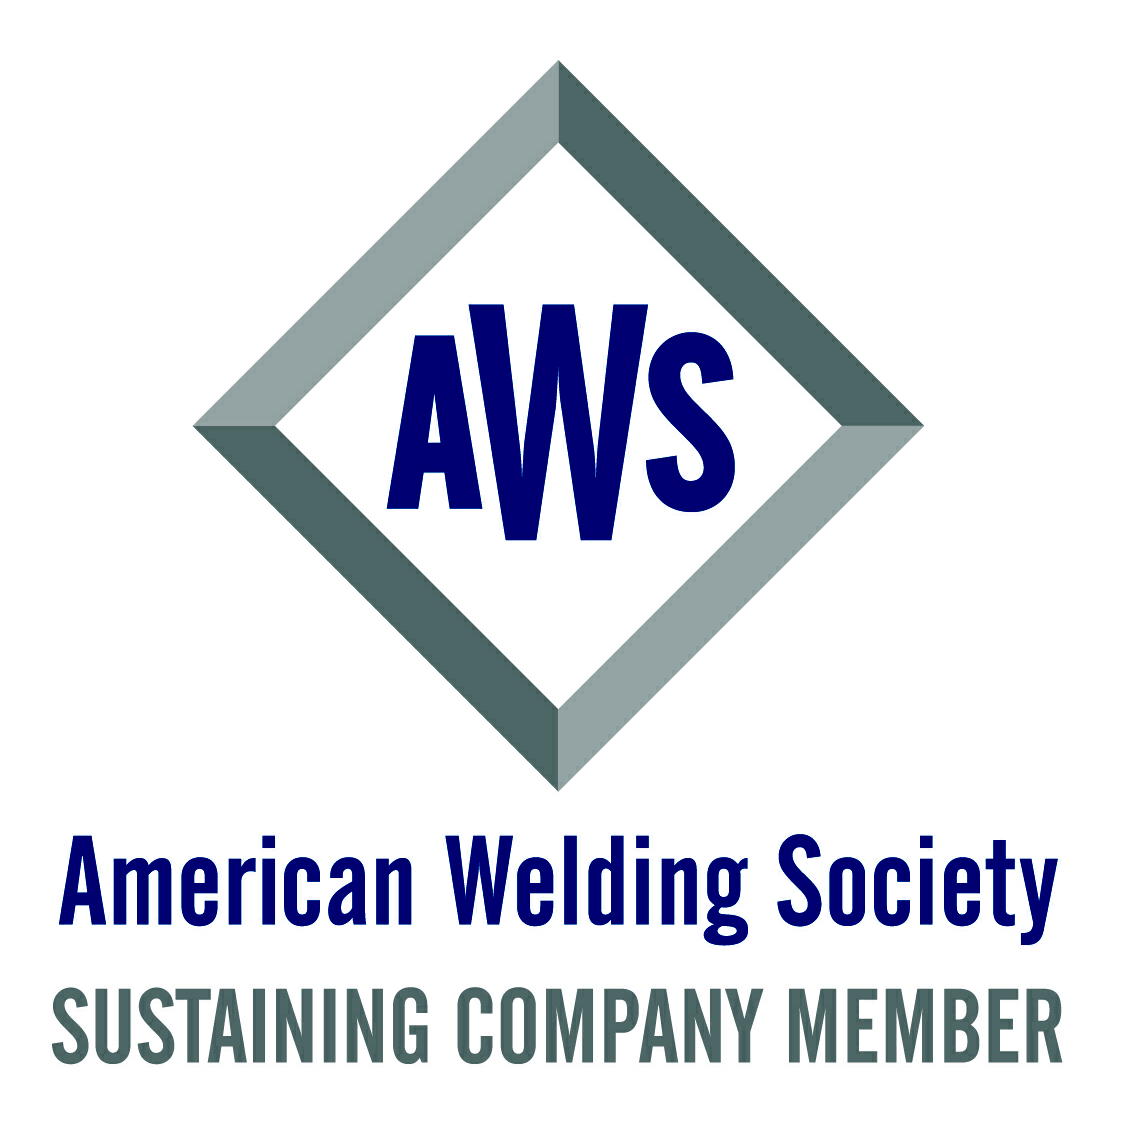 A Sustaining Company Member of AWS (American Welding Society)